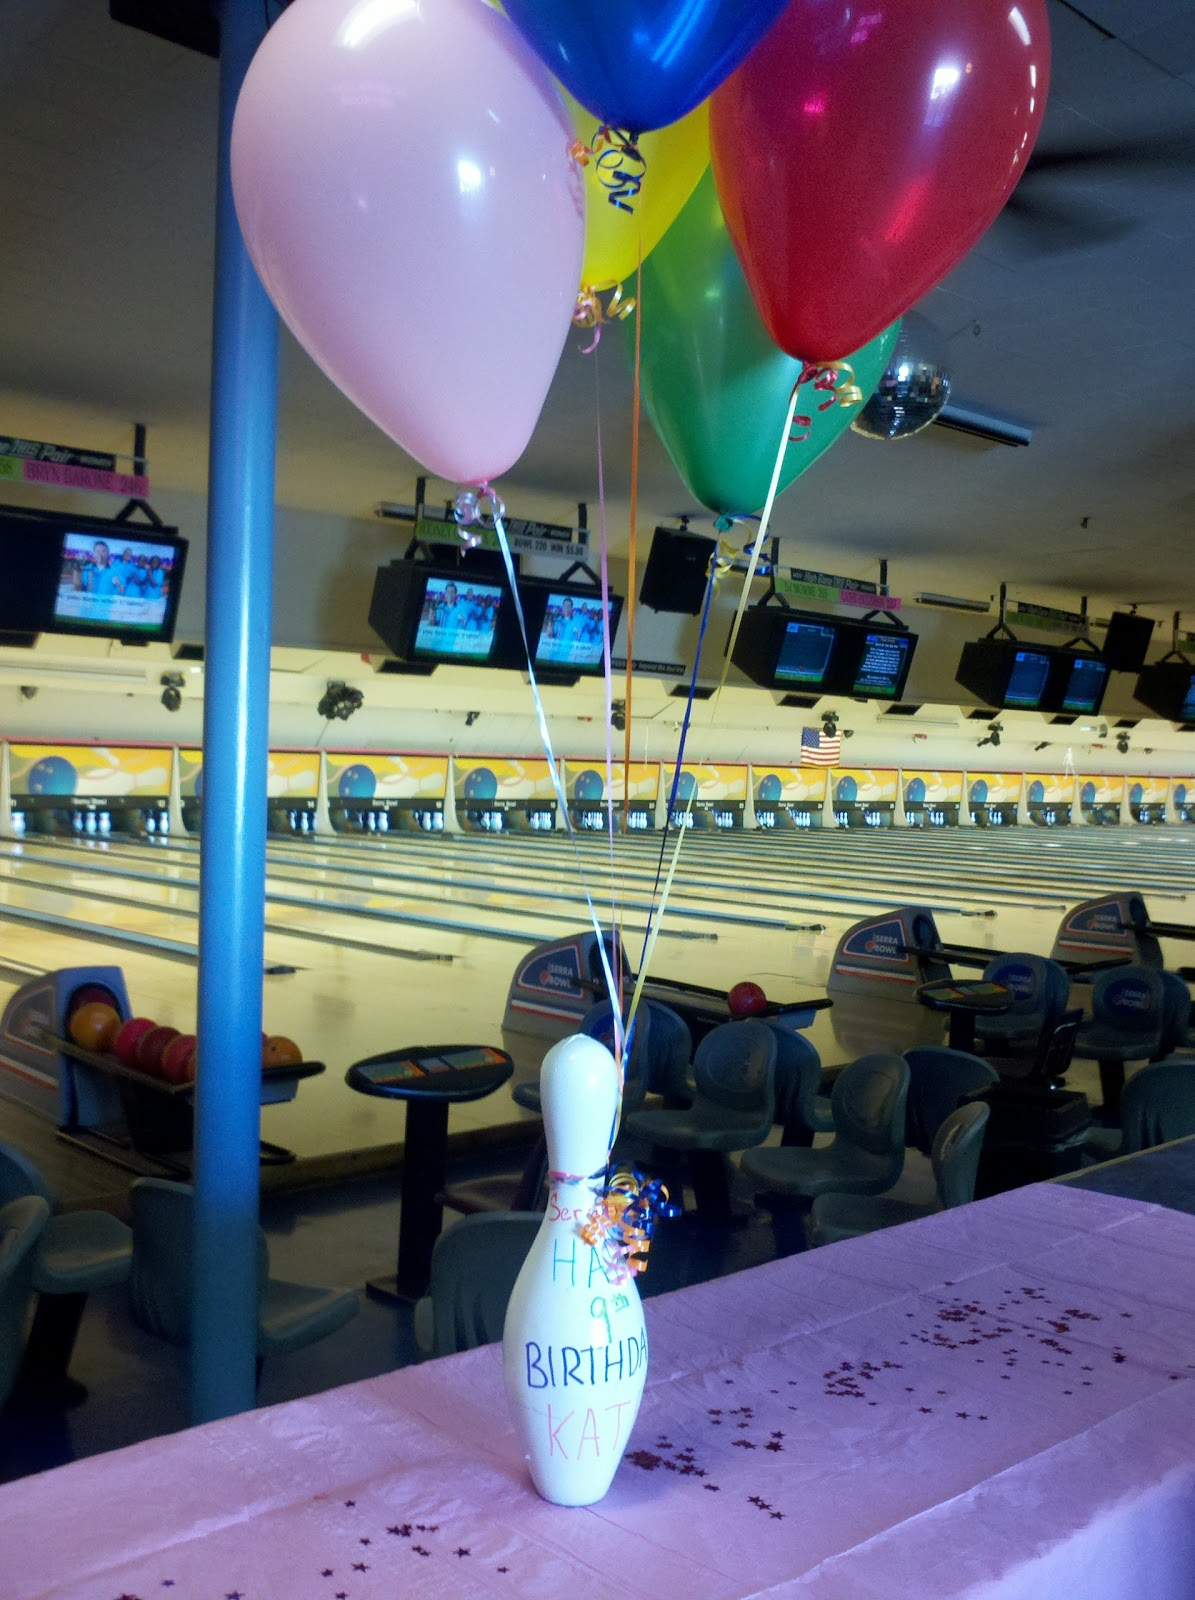 Bowling pin balloons - A Bowling Pin With Balloons Welcomes The Group For Bowling